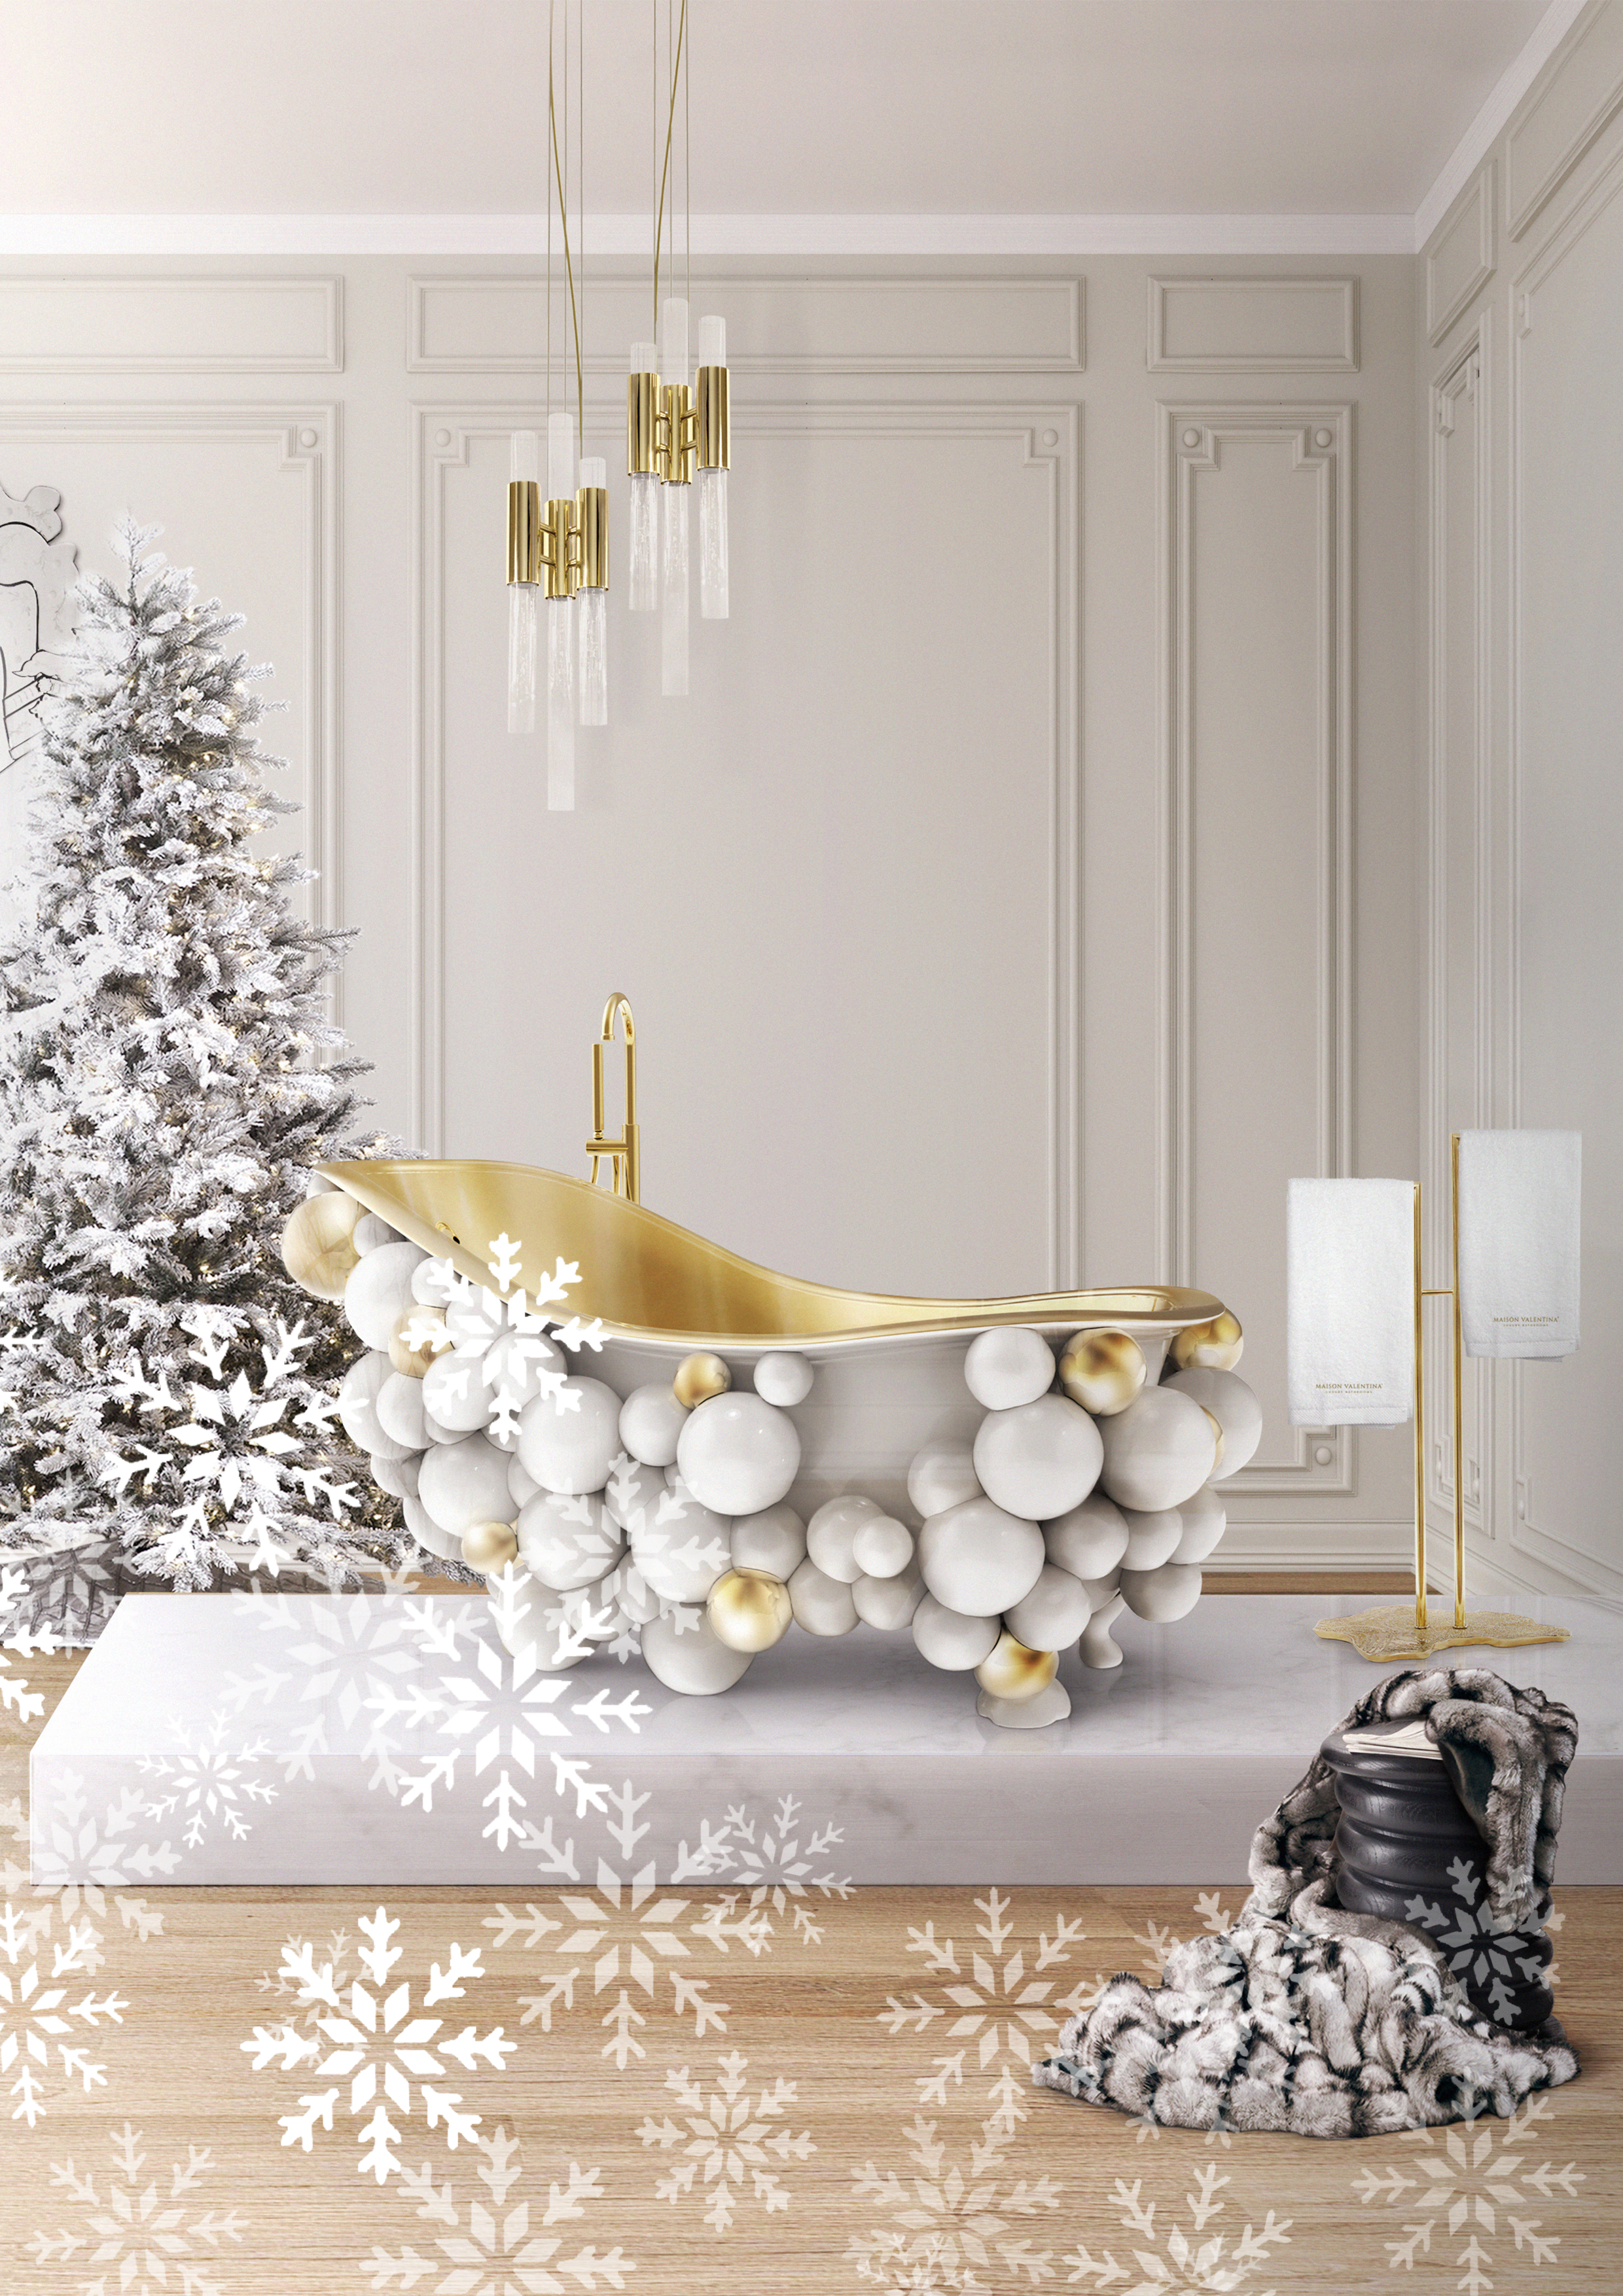 Luxury Hints For An Enchanted Christmas Bathroom Luxury Hints For An Enchanted Christmas Bathroom capa